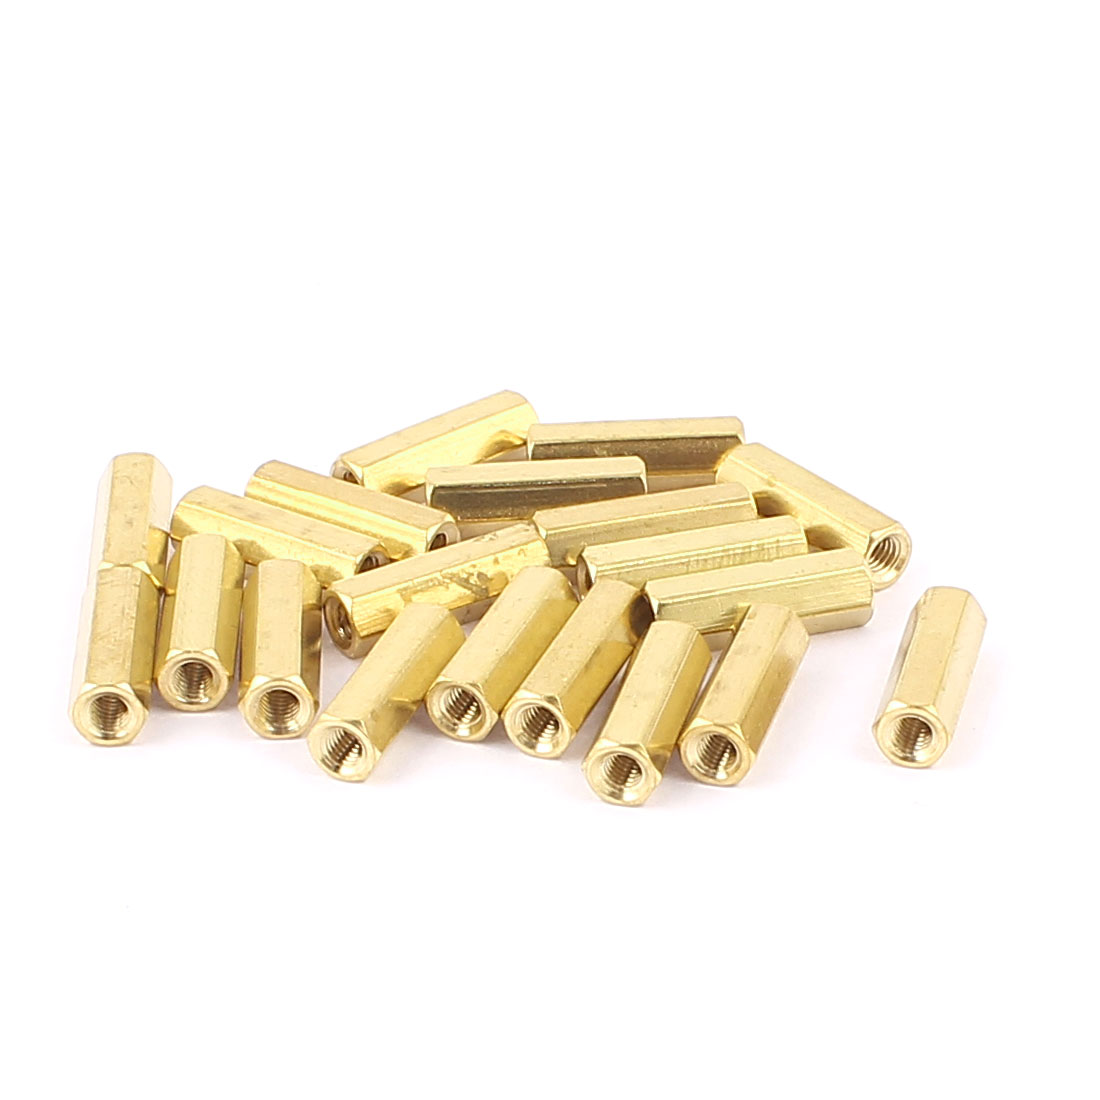 20 Pcs Computer Motherboard M3 x 15mm Female Standoffs Screw Hex Spacer